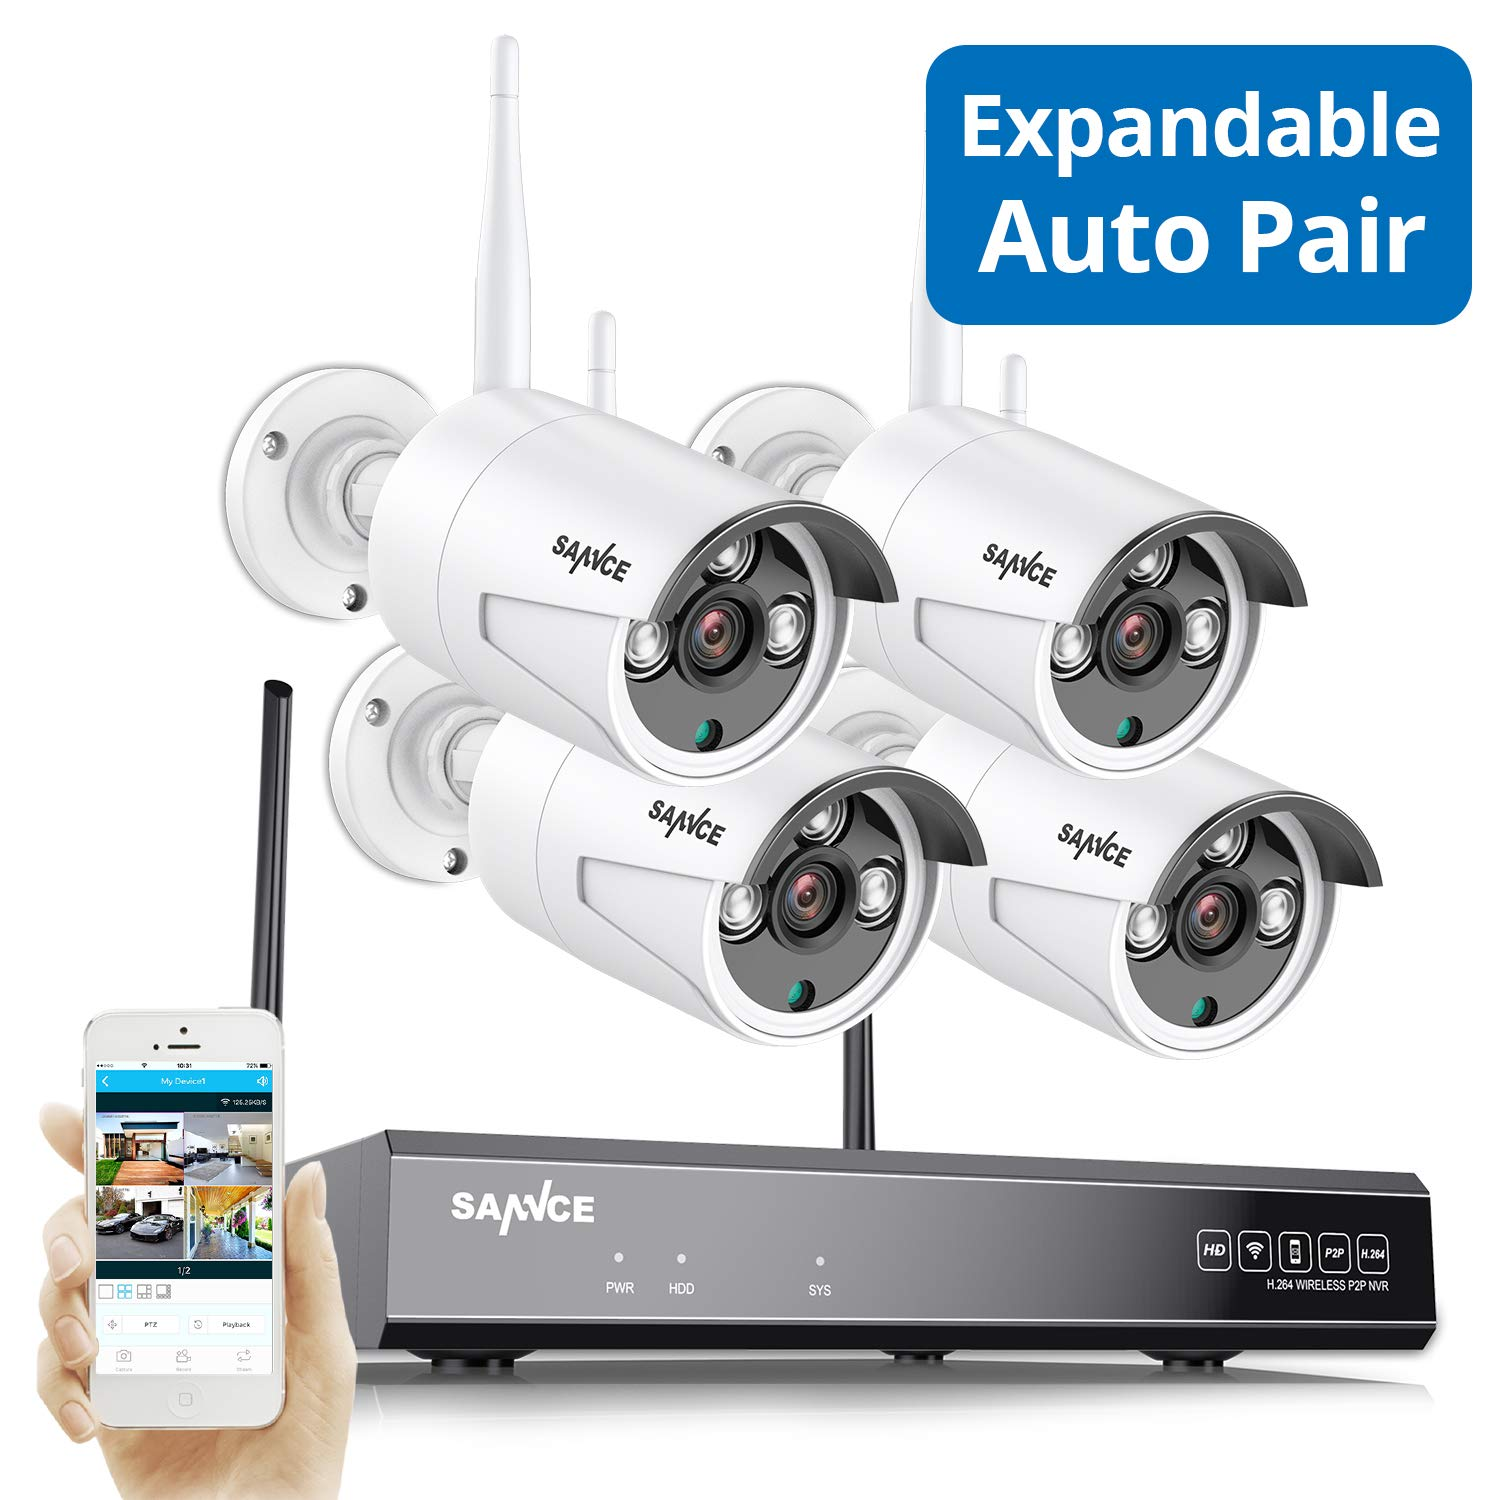 Update Strong Signal Version, Wireless Security Camera System, SANNCE 1080P 8CH NVR and 4 pcs 960P IP66 Weatherproof Surveillance Cameras,Indoor/Outdoor with 100FT Night Vision, NO HDD Included by SANNCE